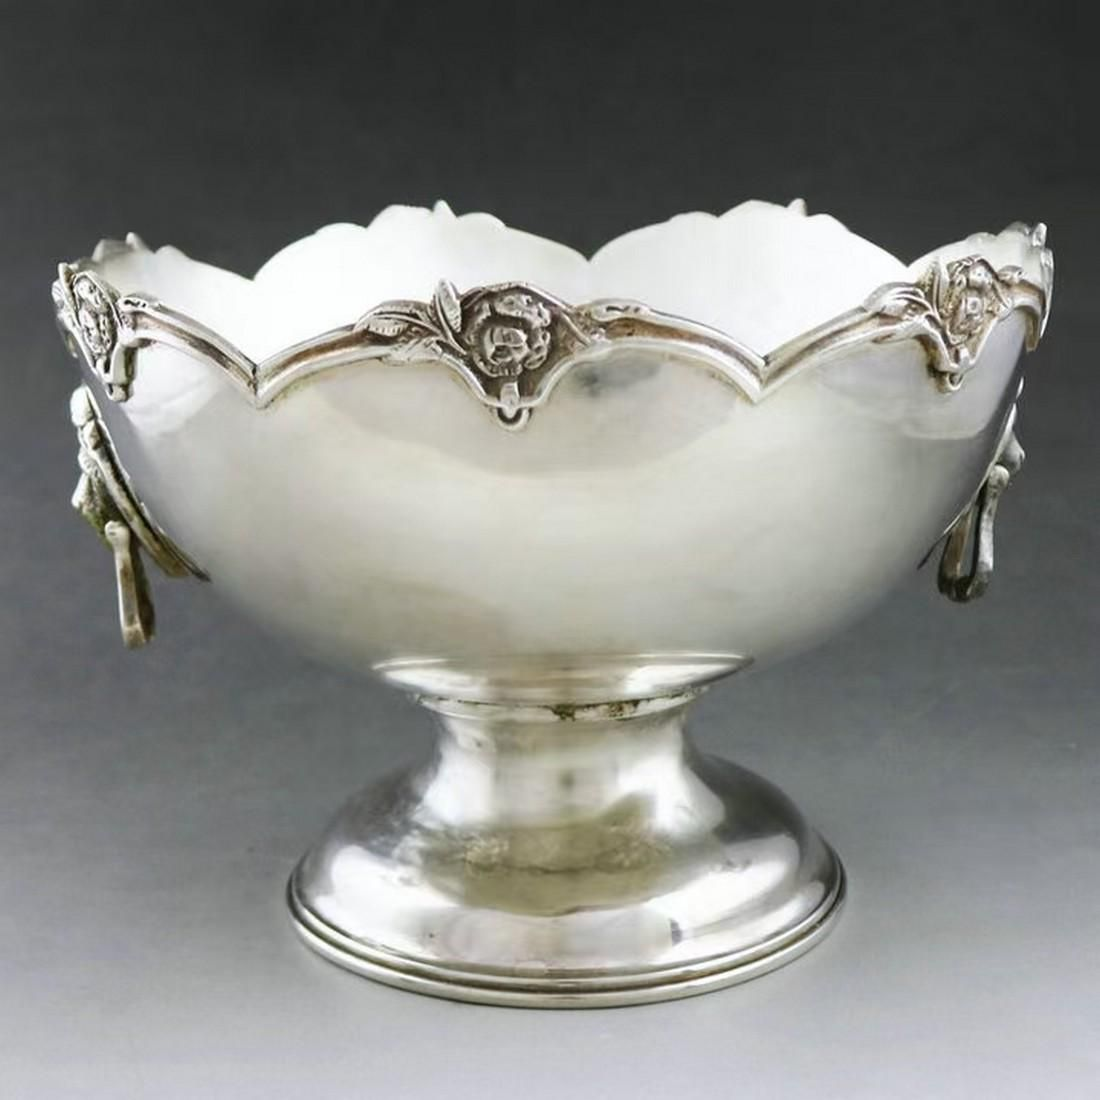 Nordic sterling silver tall fruit plate